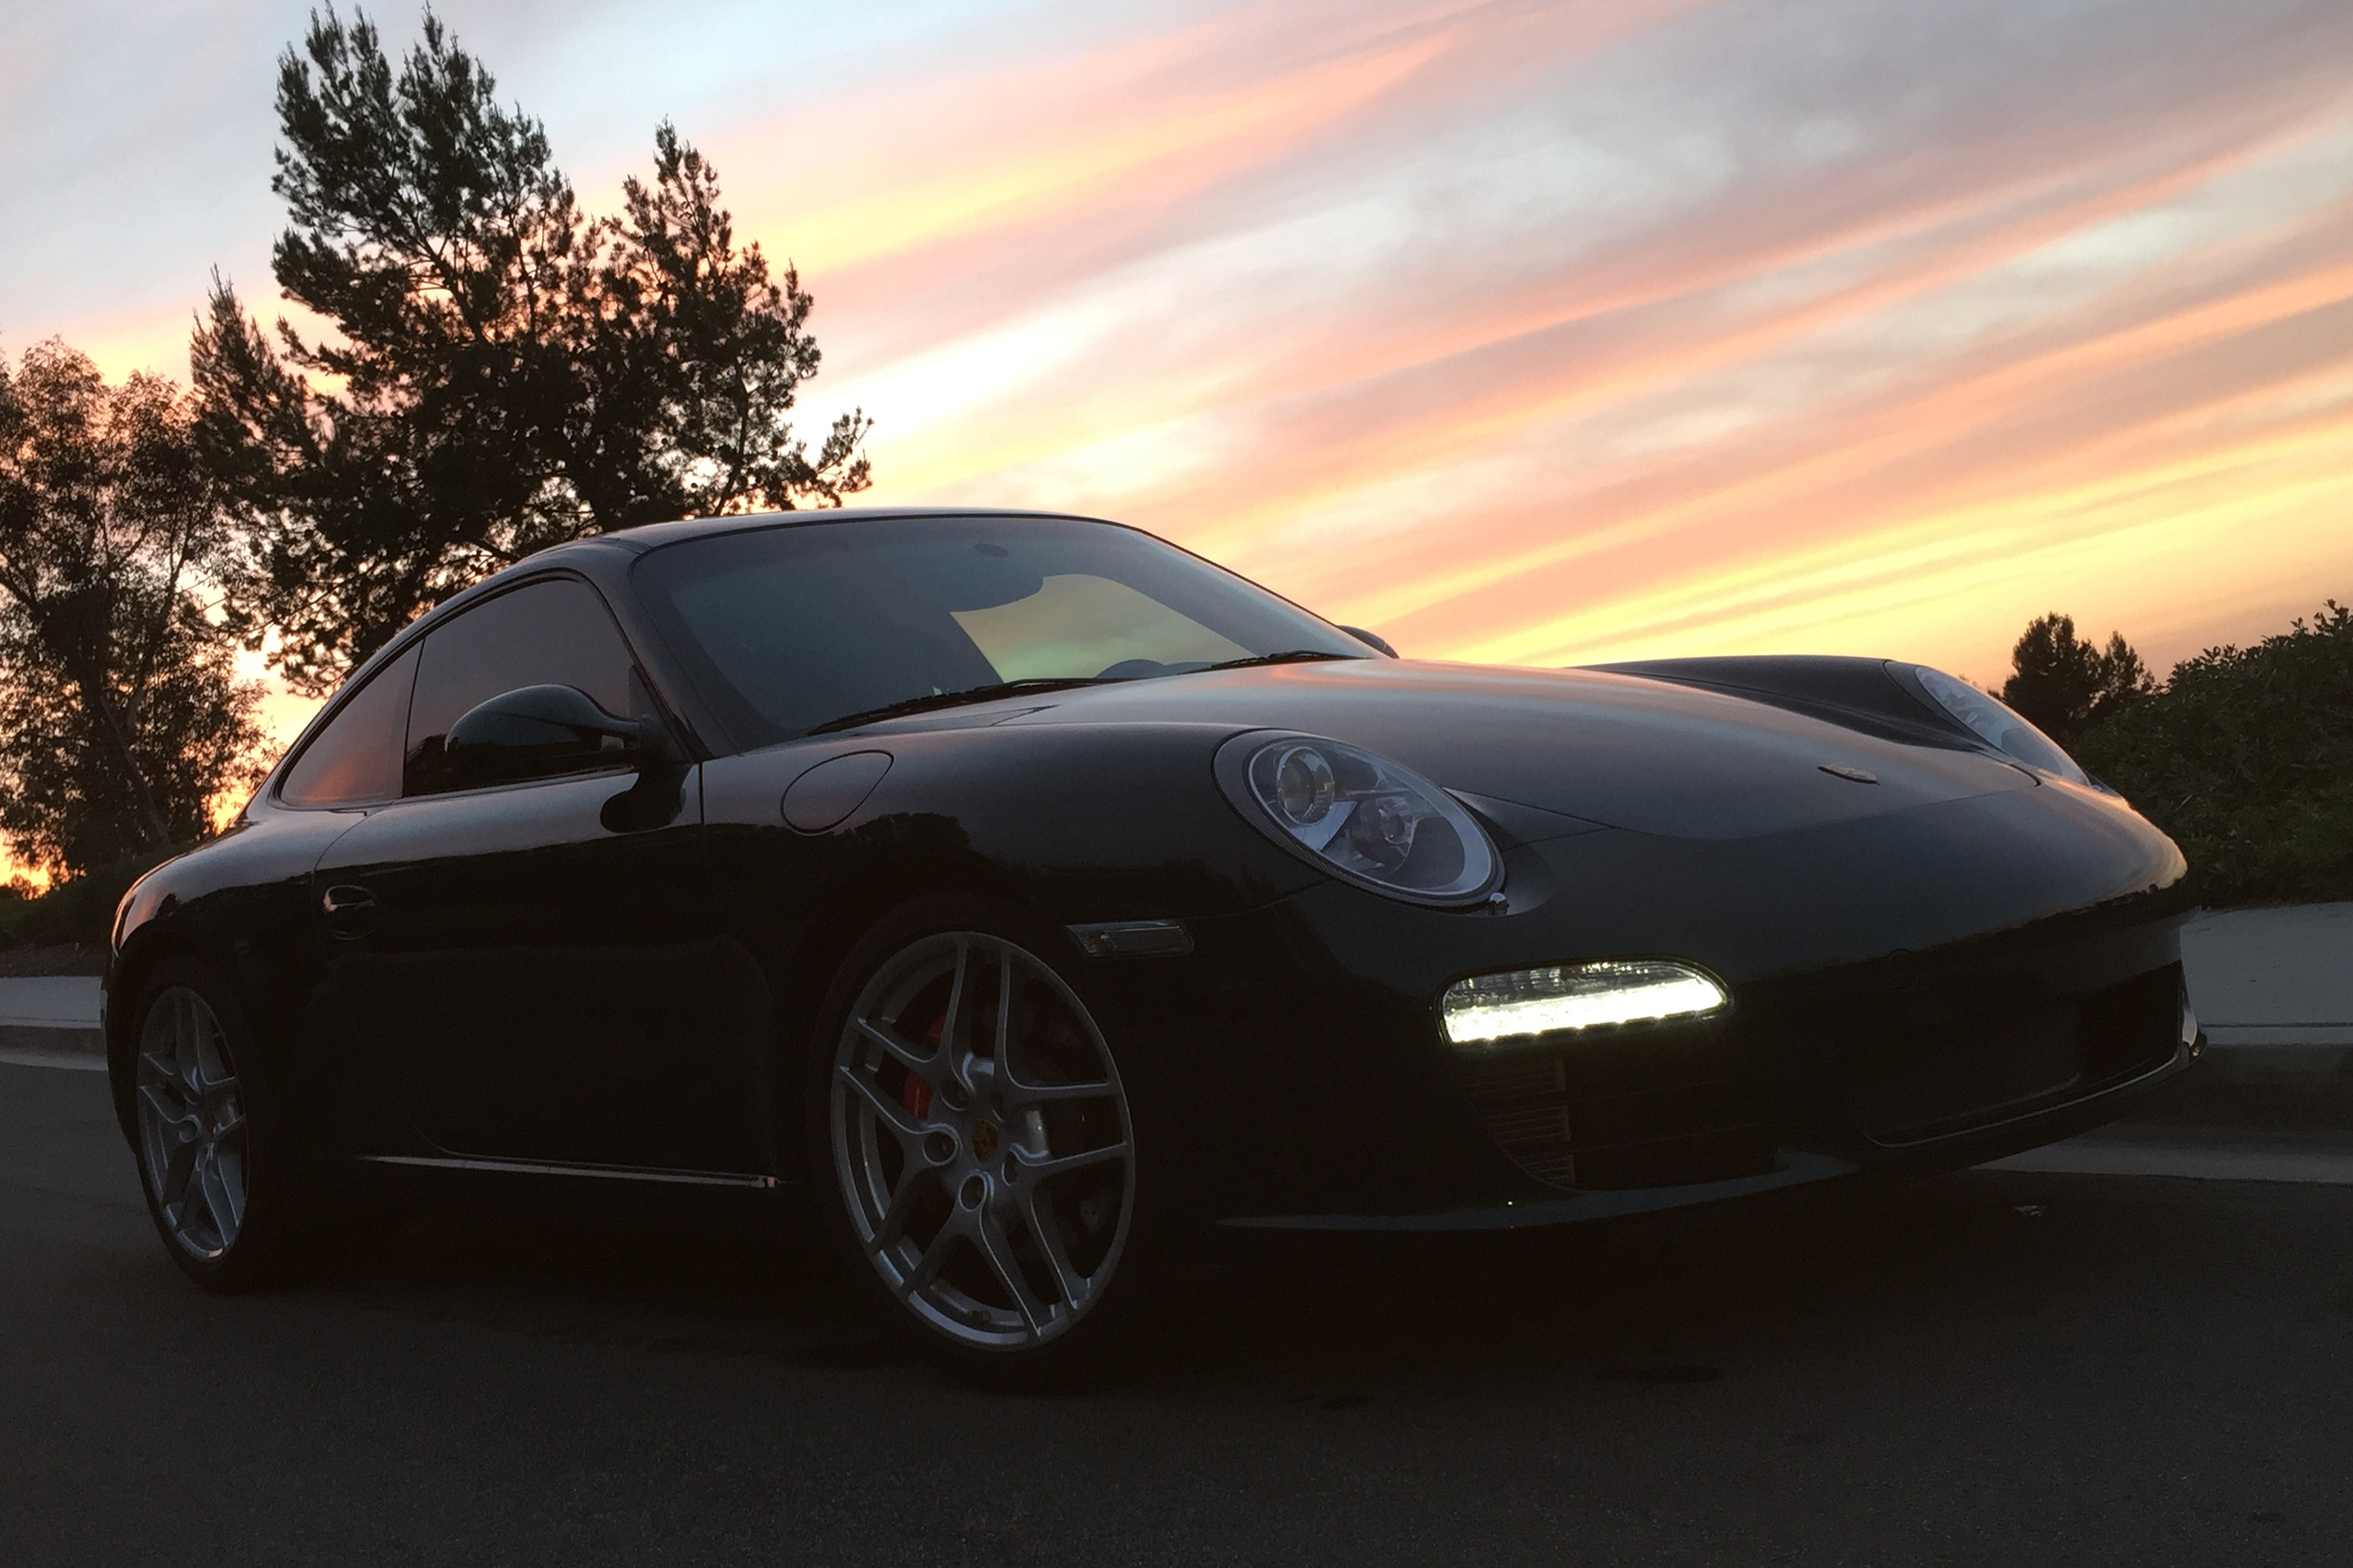 2009 Porsche 911 Carerra S Sunset